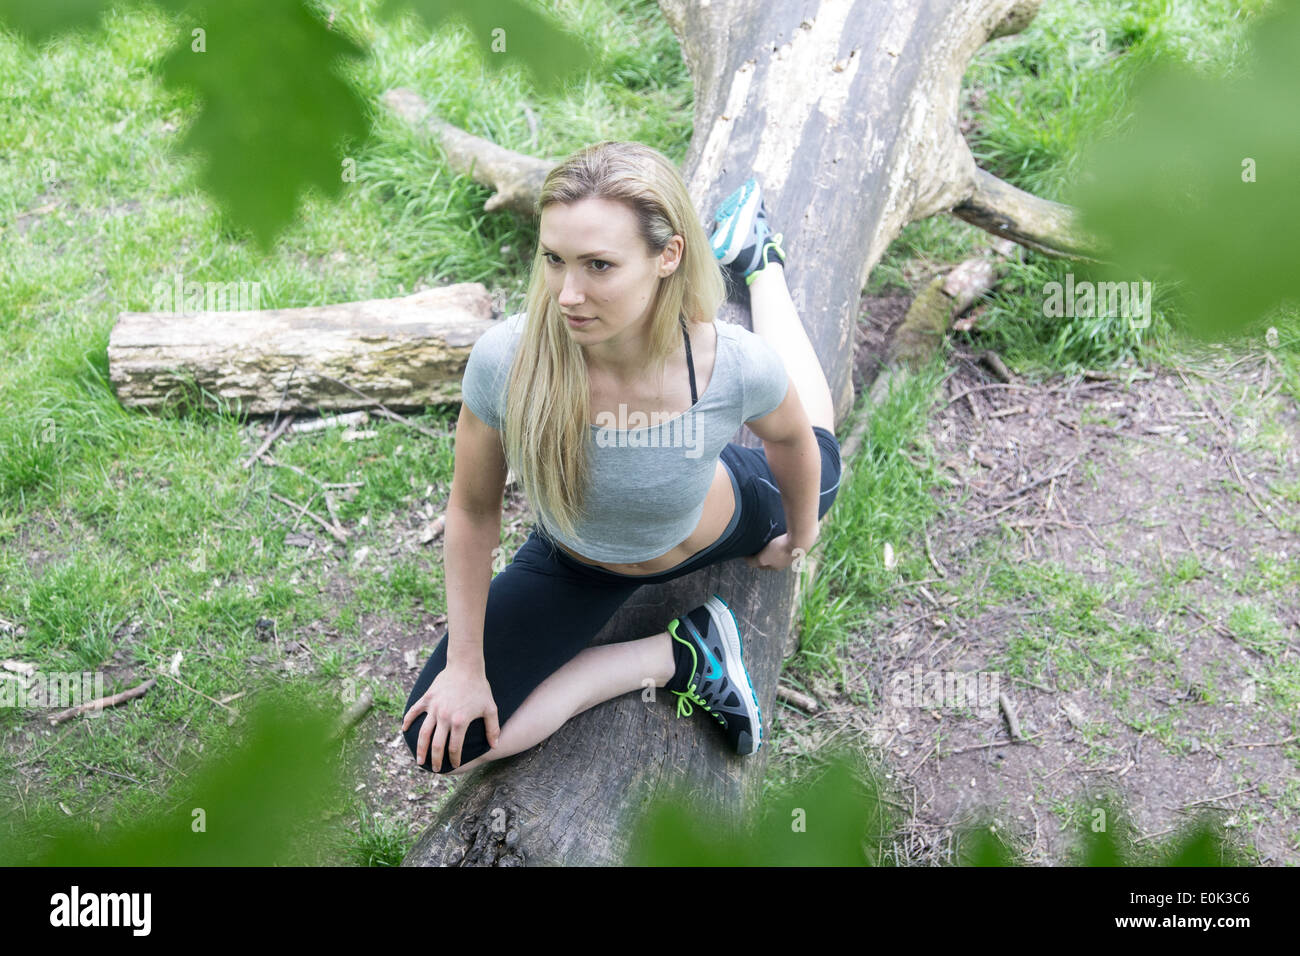 Blonde lady wearing black leggings and a grey crop top practicing yoga on a log on hampstead heath. - Stock Image